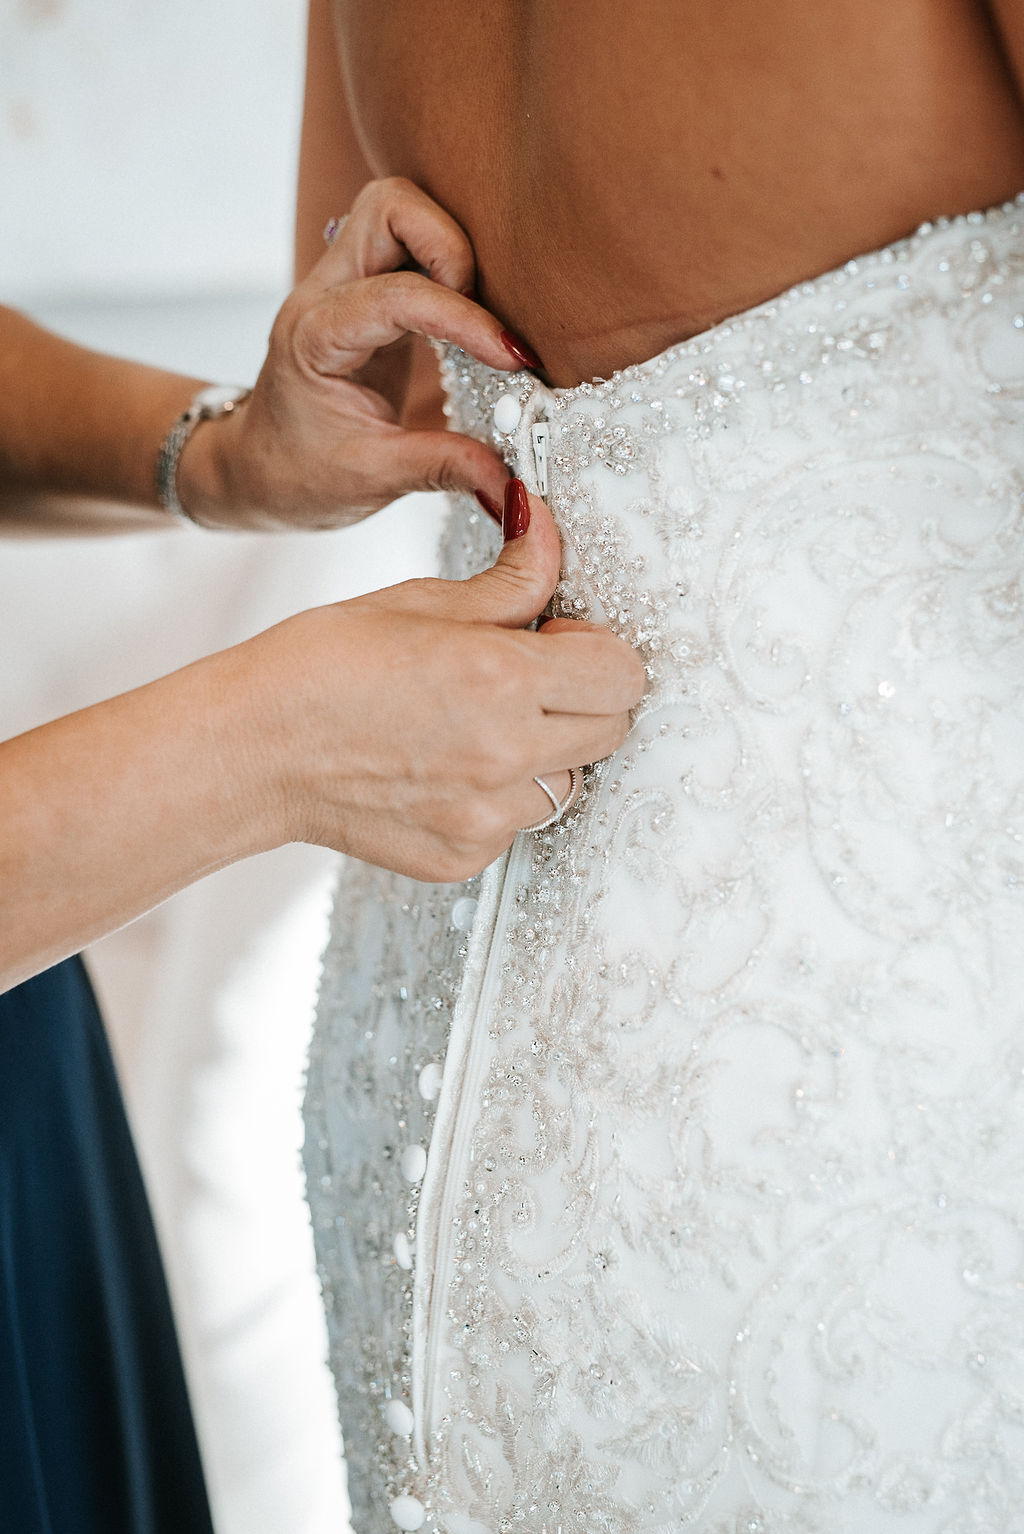 Mother of the Bride zipping up wedding dress at Blue Valley Vineyard